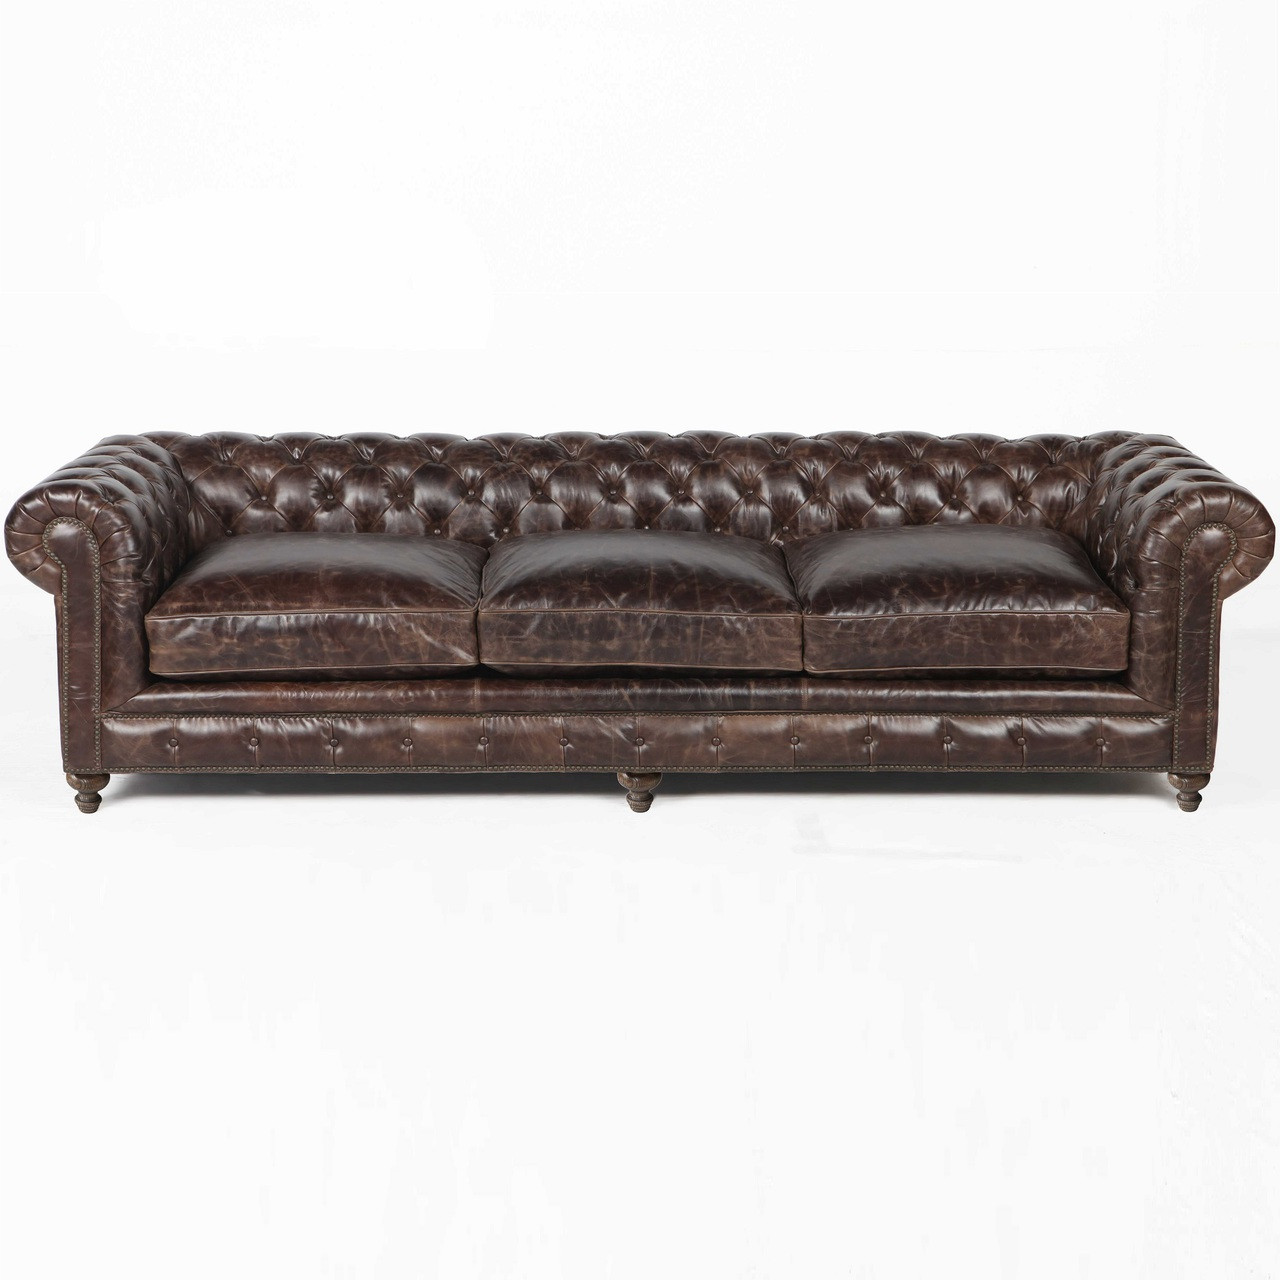 finn 118 cigar club leather upholstered chesterfield sofa. Black Bedroom Furniture Sets. Home Design Ideas